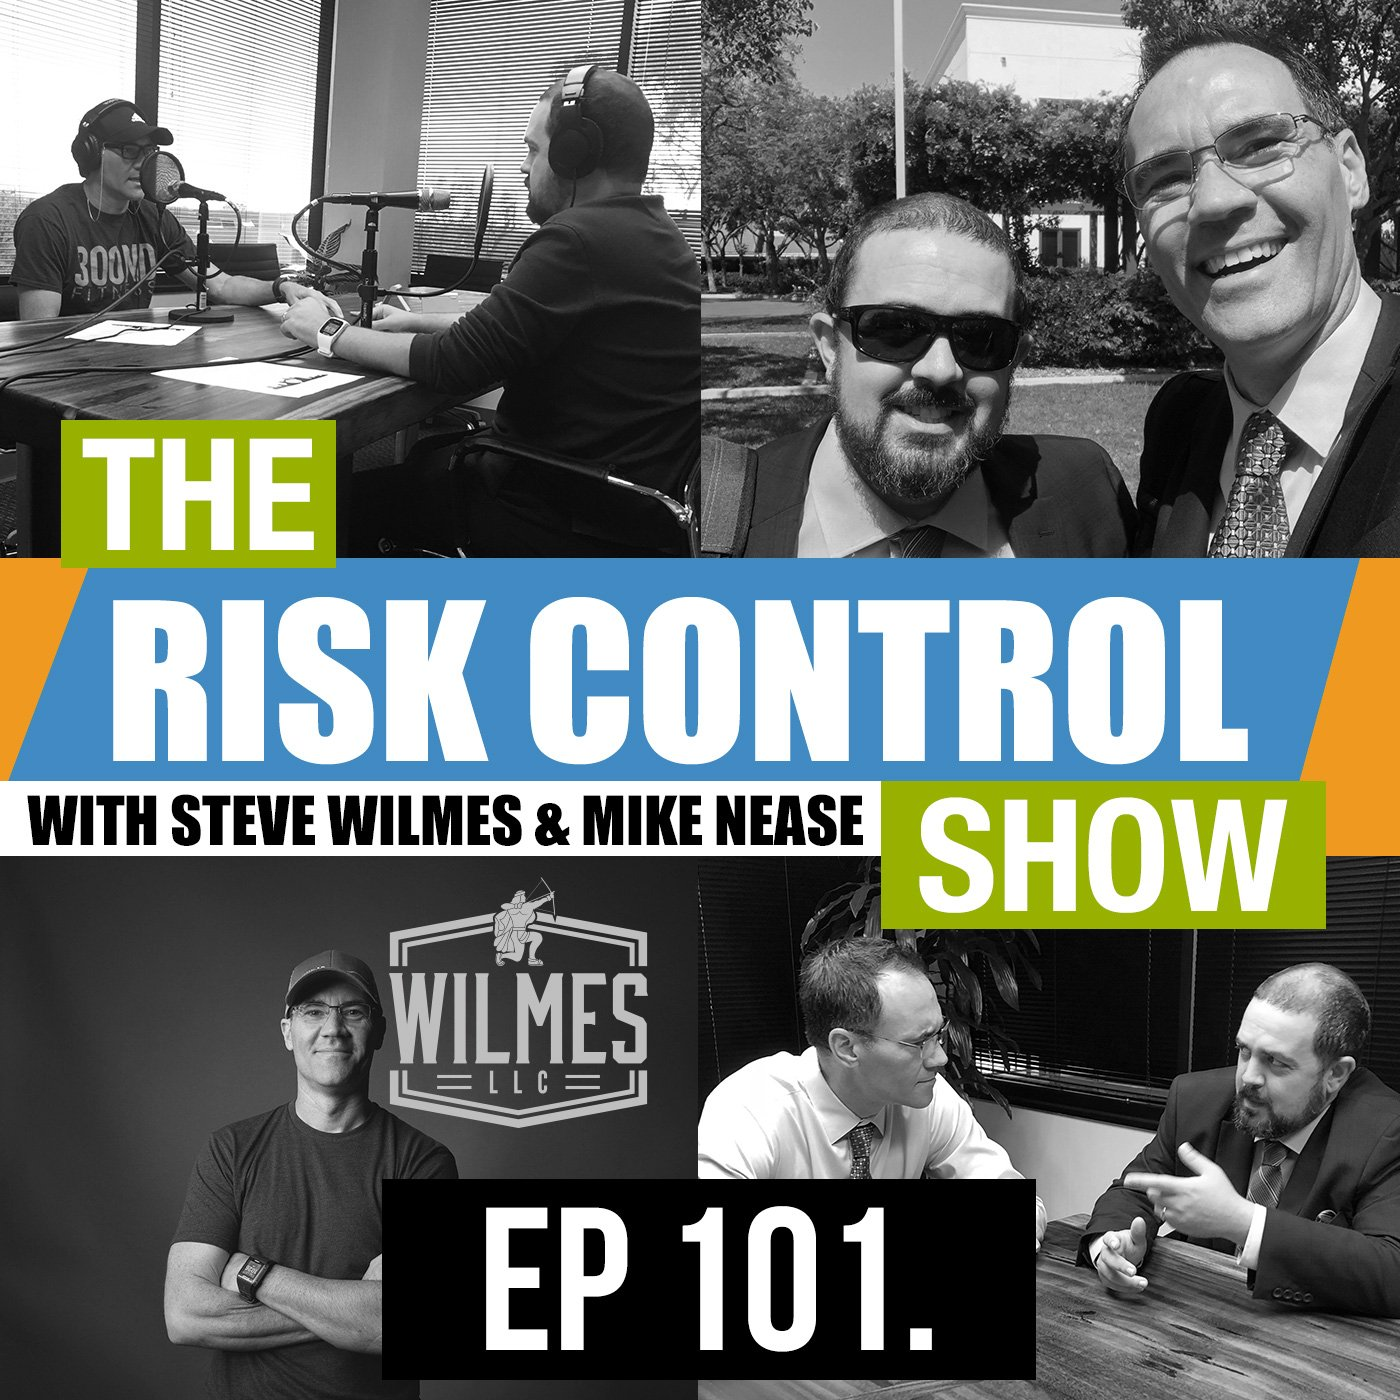 The Risk Control Show Episode 101 - Done Right: AMC's investigation of Chris Hardwick